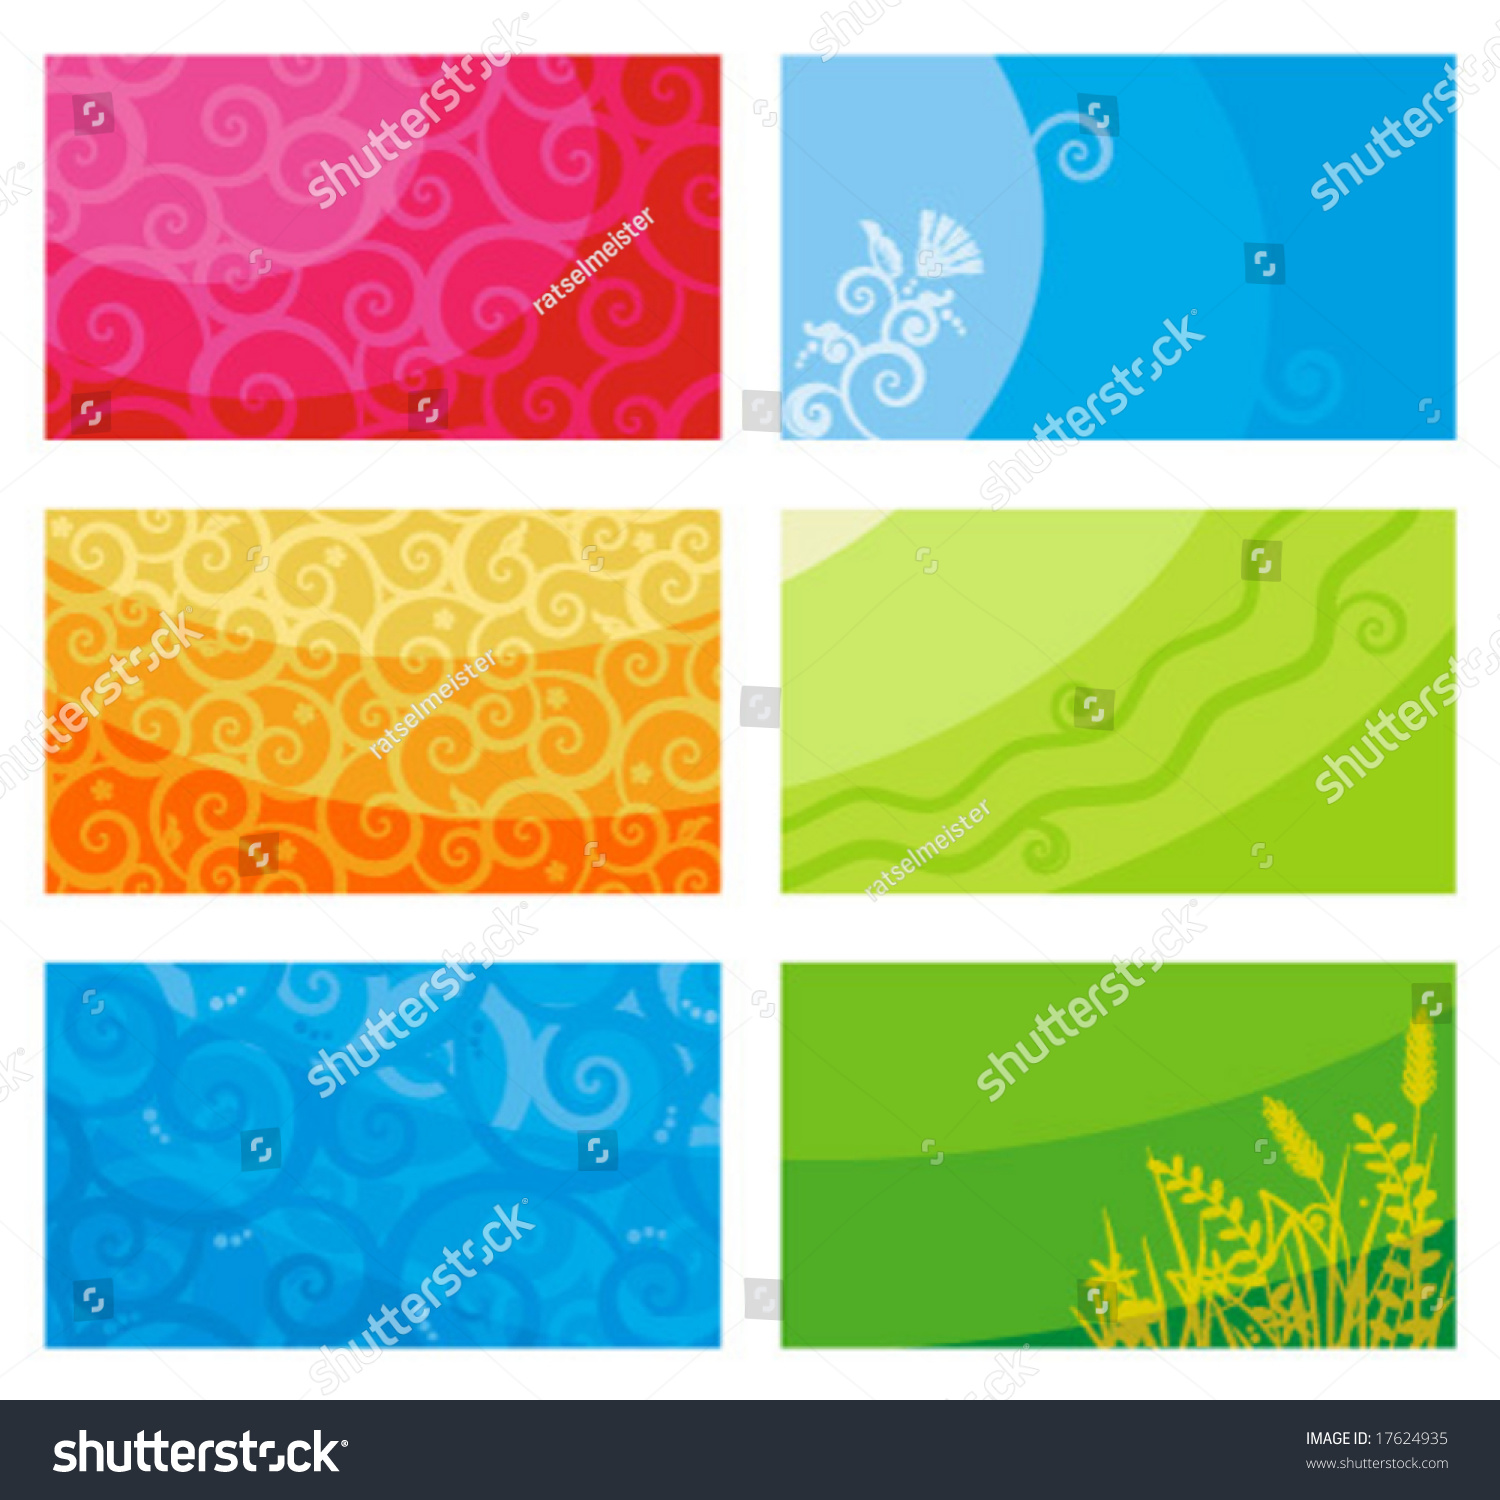 Business Cards Templates Banners Backgrounds Scrolls Stock Vector ...